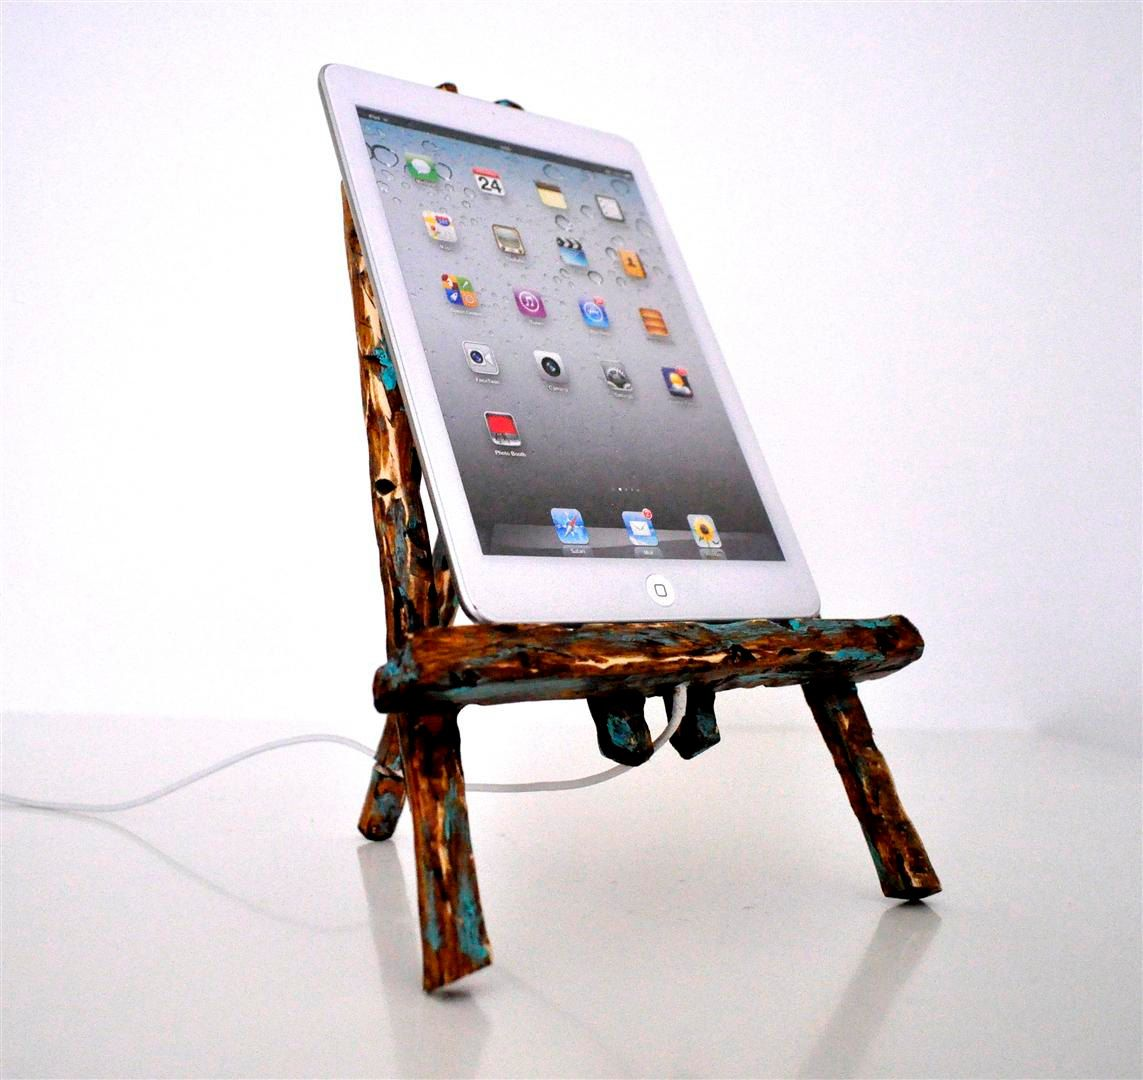 iPhone 5 dock / iPad Mini dock - rustic turquoise distressed wooden easel.  38.00